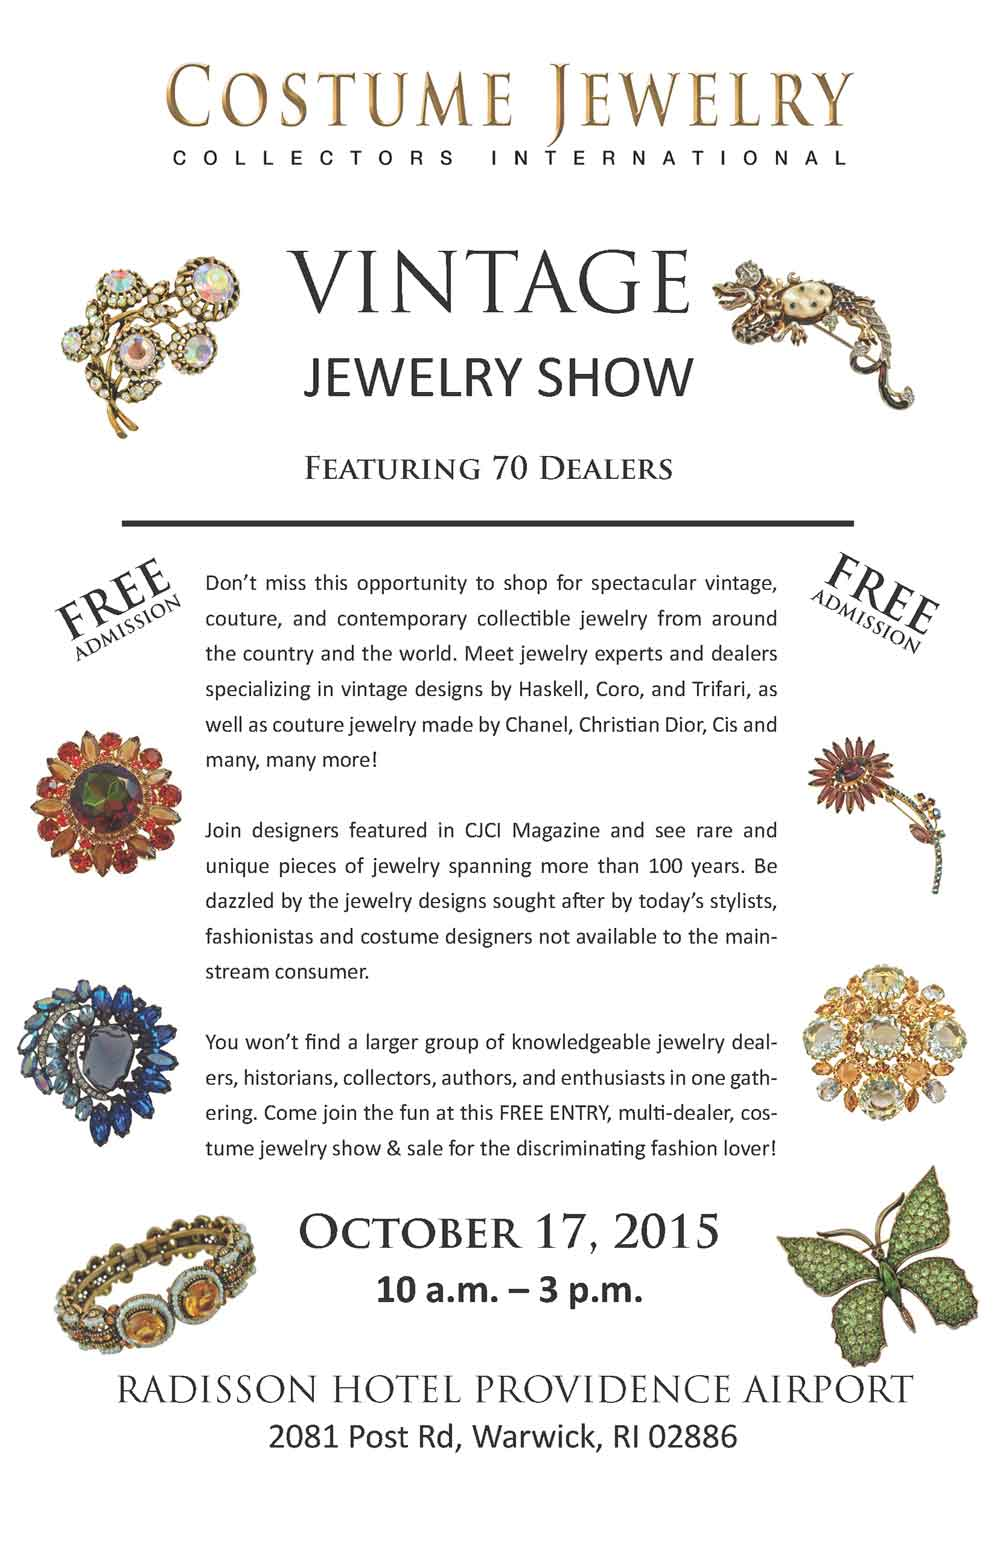 CJCI Saturday Show & Sale Oct. 17